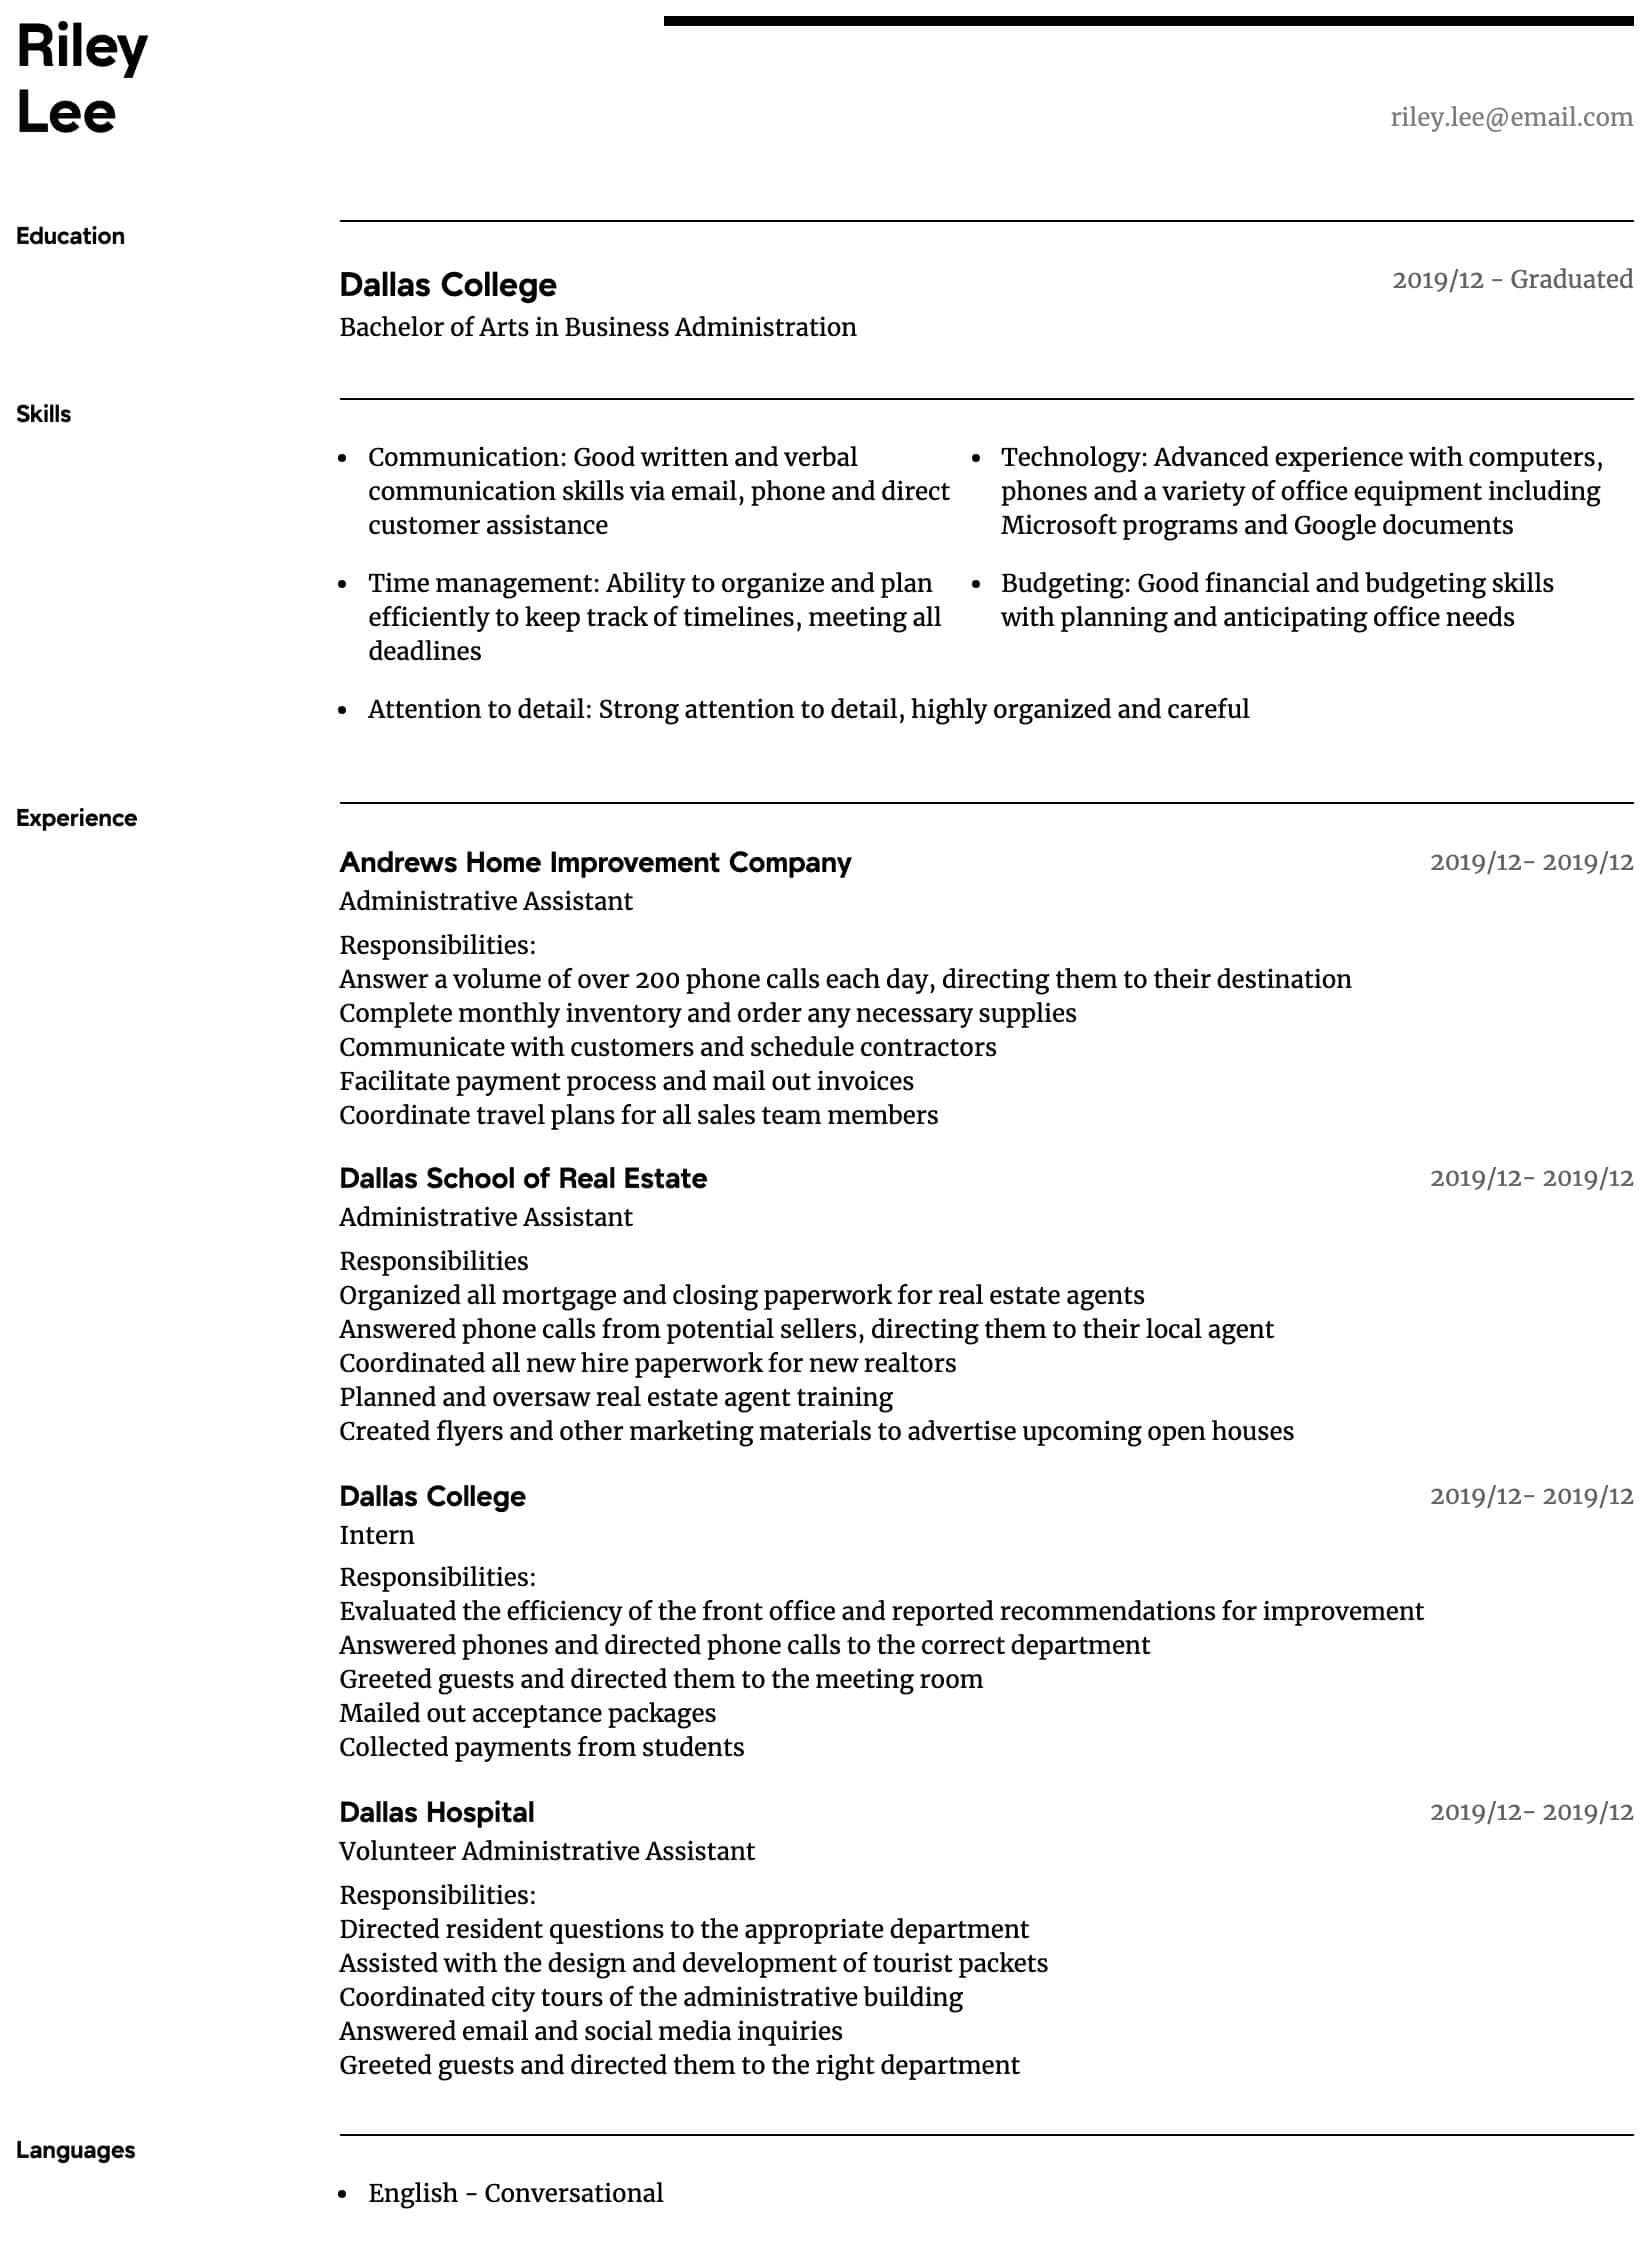 administrative assistant resume samples all experience levels admin objective Resume Admin Assistant Resume Objective